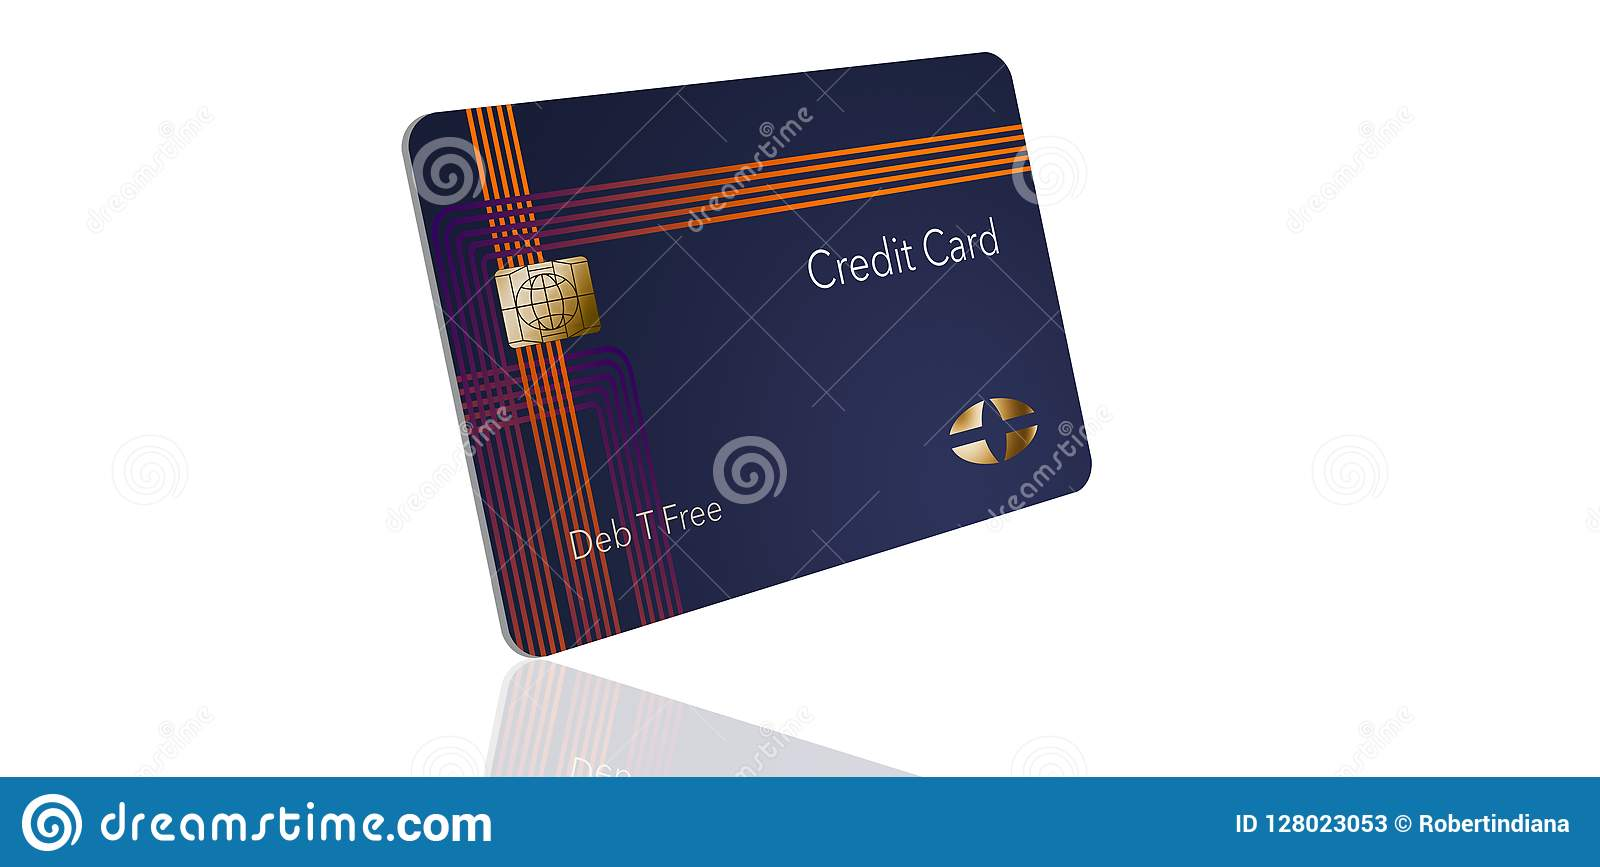 here is a modern credit card that is a mock with generic